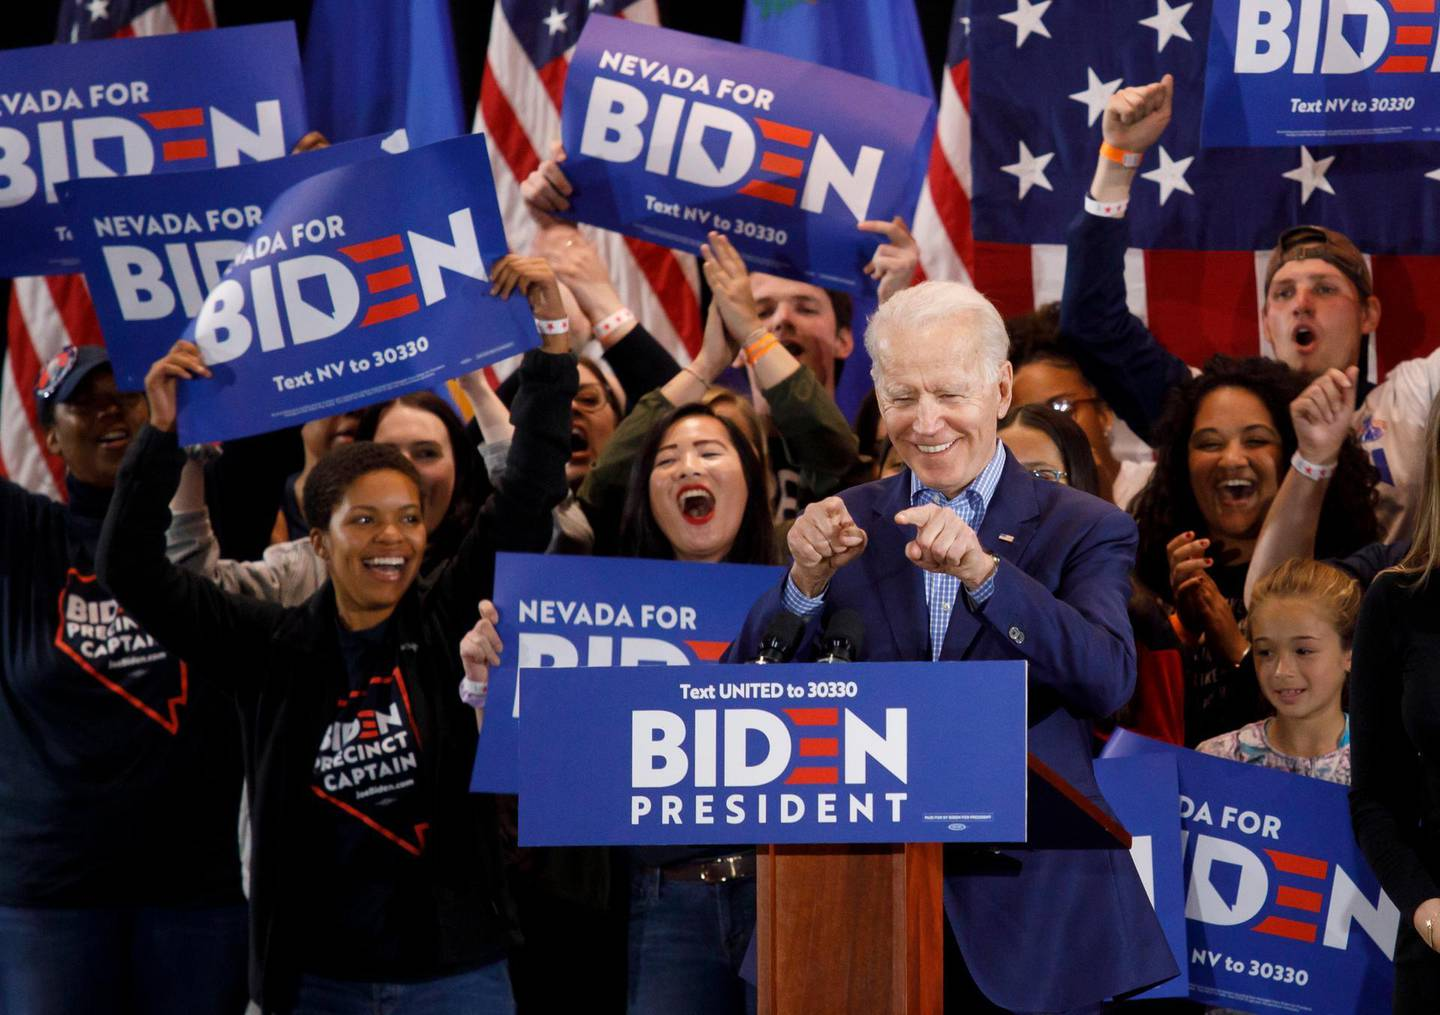 epa08468181 US Democratic presidential candidate, former Vice President Joe Biden (C, front), reacts as he addresses supporters during his Nevada post-caucus rally in Las Vegas, Nevada, USA, 22 February 2020 (reissued 06 June 2020). According to media reports on 06 June 2020, Biden officially secured the Democratic Party presidential nomination after receiving the required number of delegates via state primaries. Biden has campaigned mainly from his home due to the ongoing coronavirus pandemic.  EPA/EUGENE GARCIA